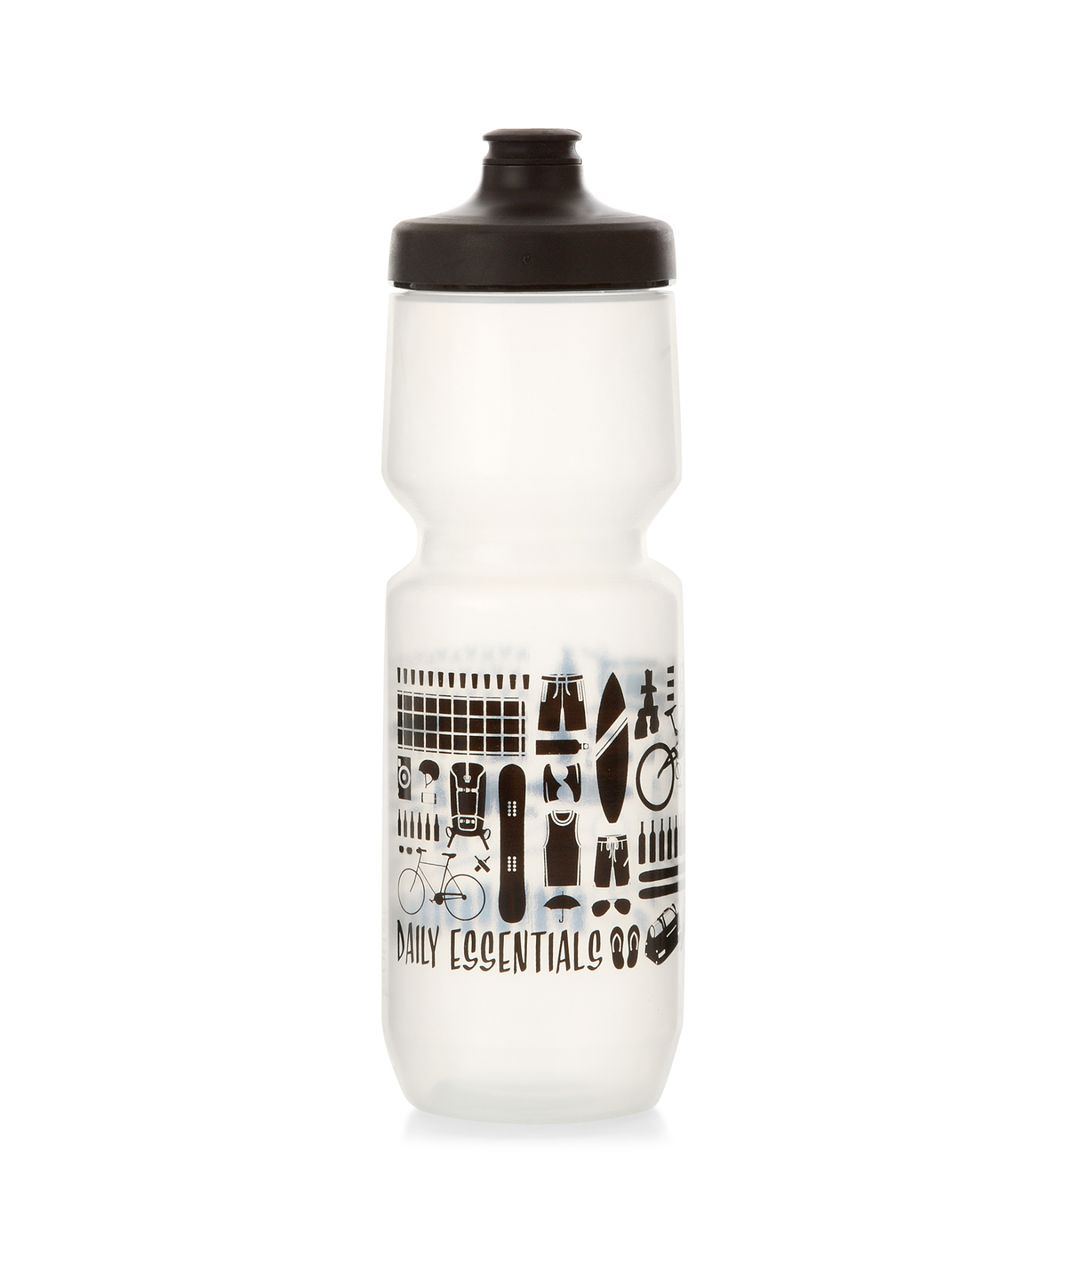 Lululemon Purist Cycling Water Bottle *26 oz - Daily Essentials Greyt Black